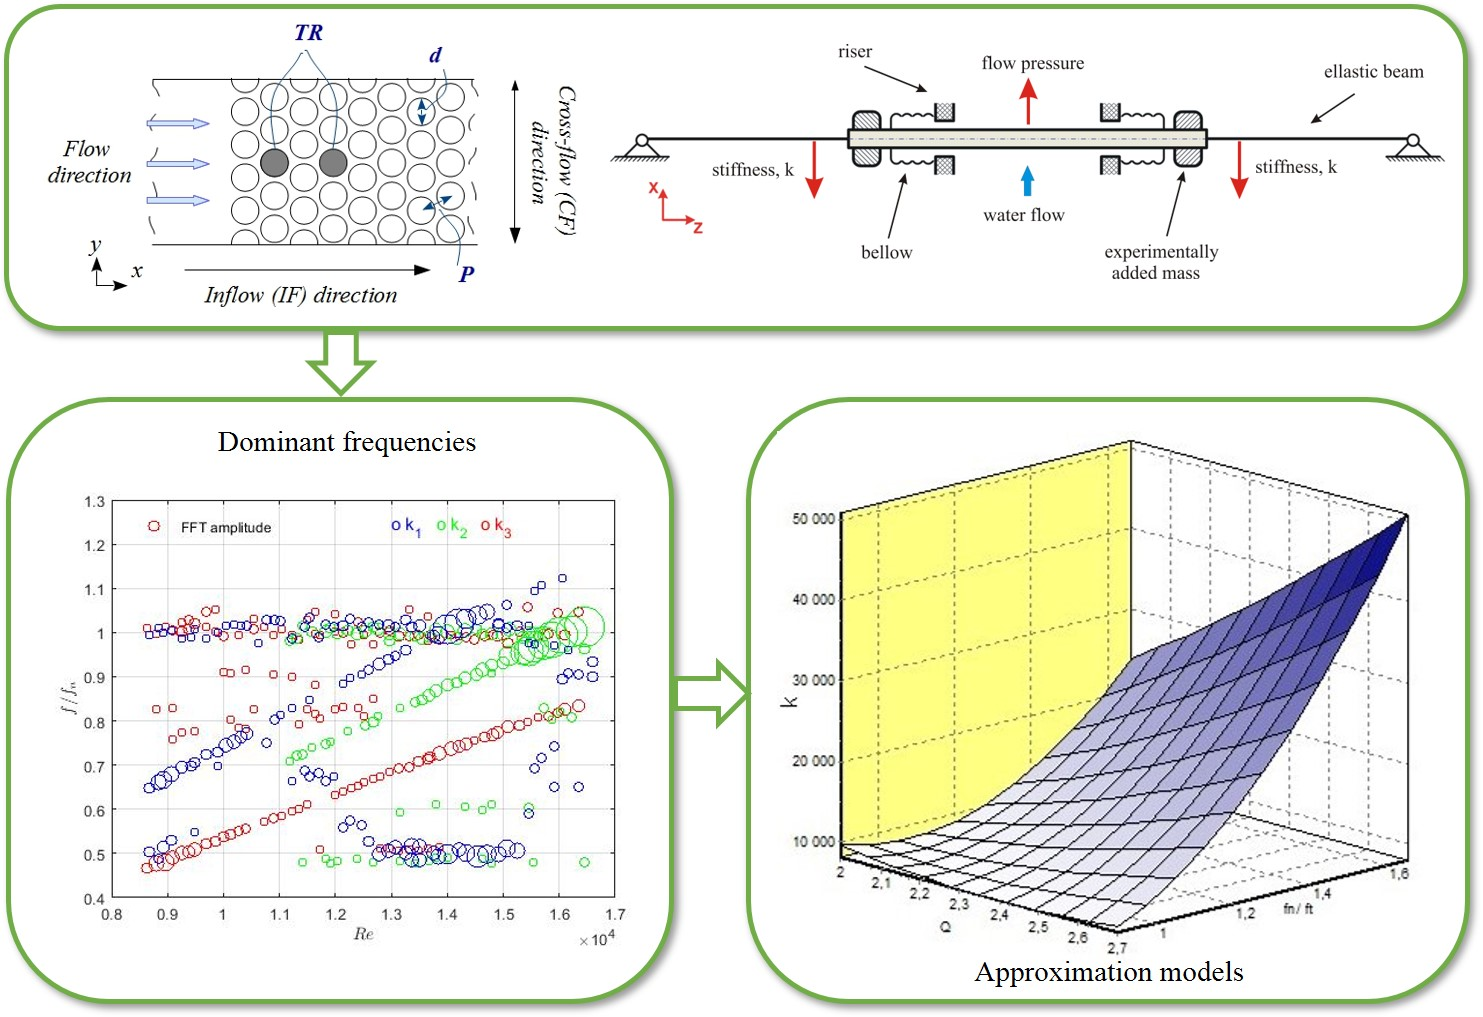 Effects of variable parameters on the behaviour of the single flexibly-mounted rod in a closely-packed array